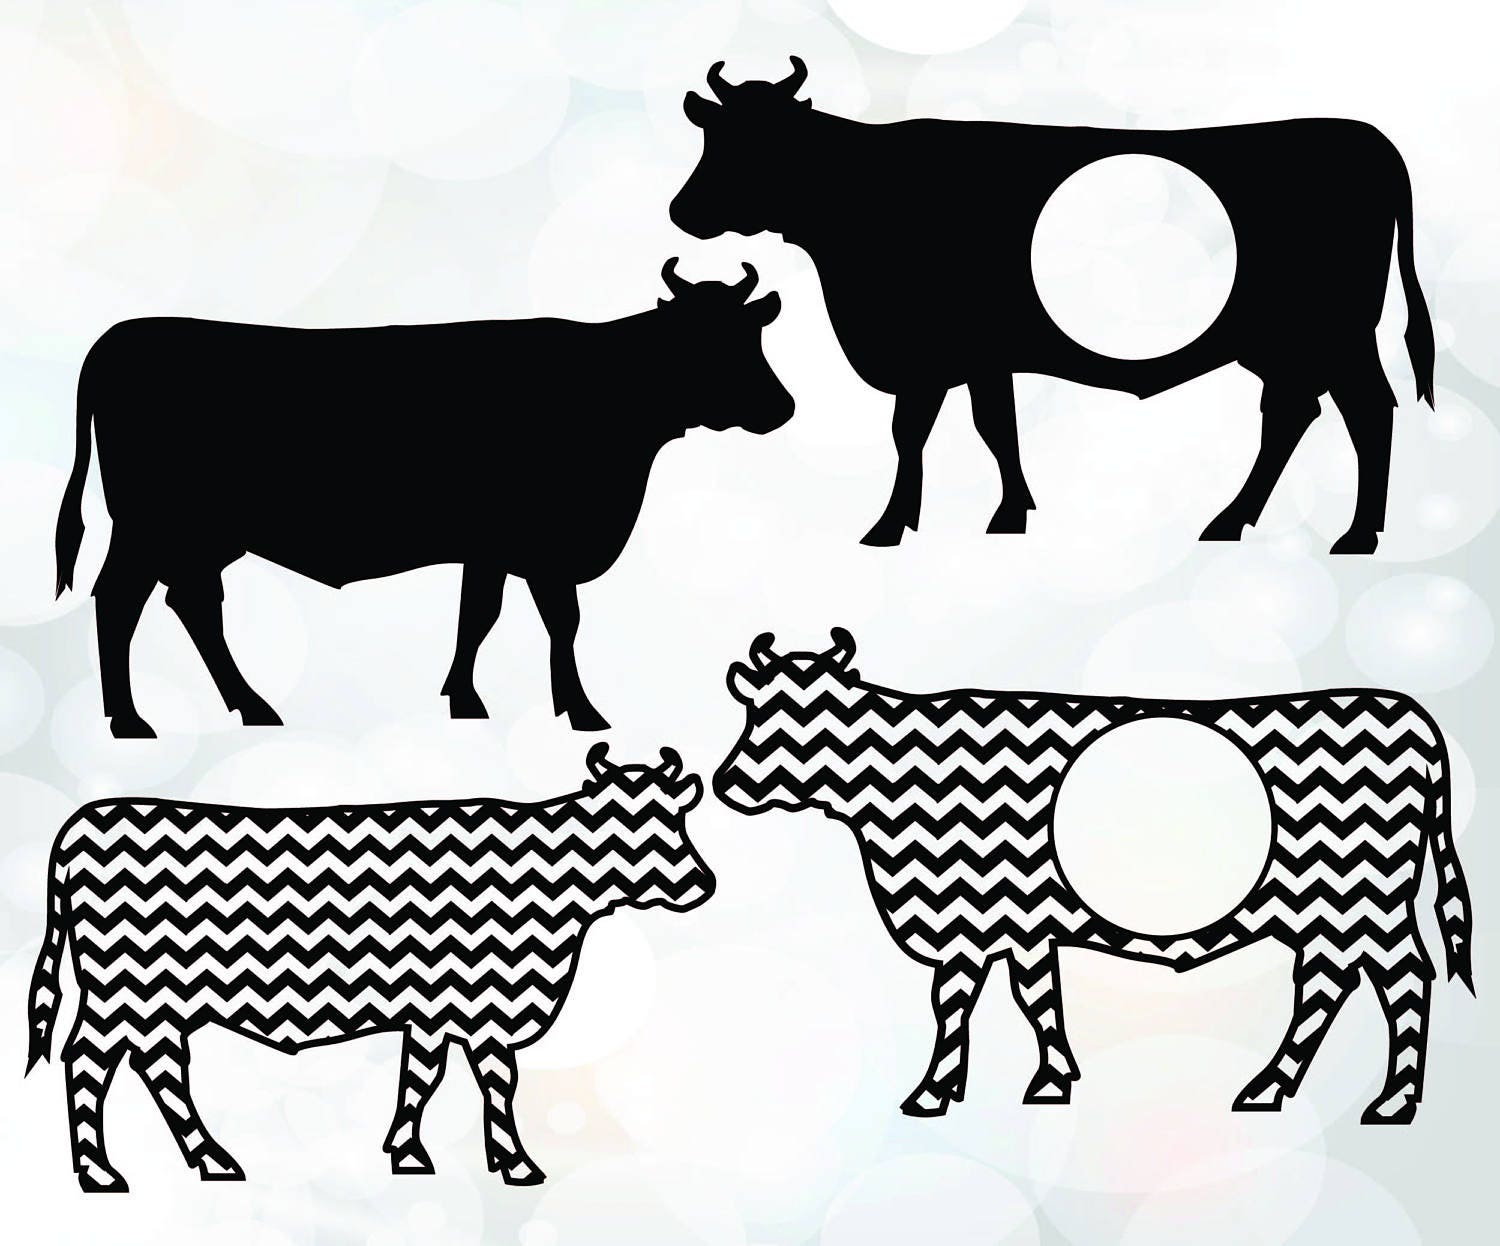 Cow SVG - Calf Clipart - Vector ClipArt for Commercial and ... for Cow And Calf Clipart  146hul